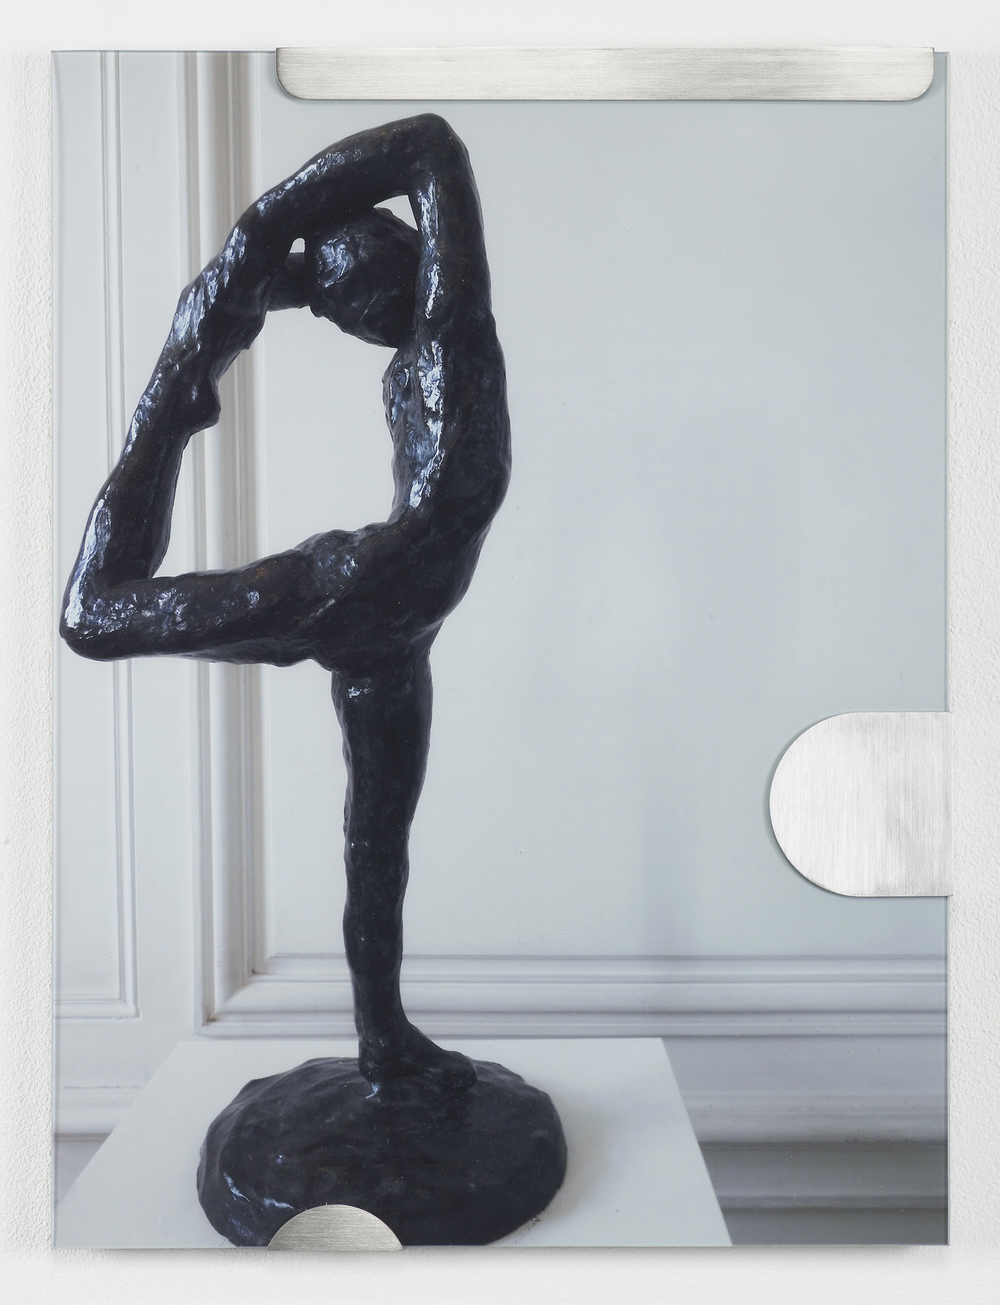 Buhuu Suite (Dancer straight) 2011 C-print, stainless steel clips, clip frame 40 x 30 x 1.5 cm / 15.7 x 11.8 x 0.6 in